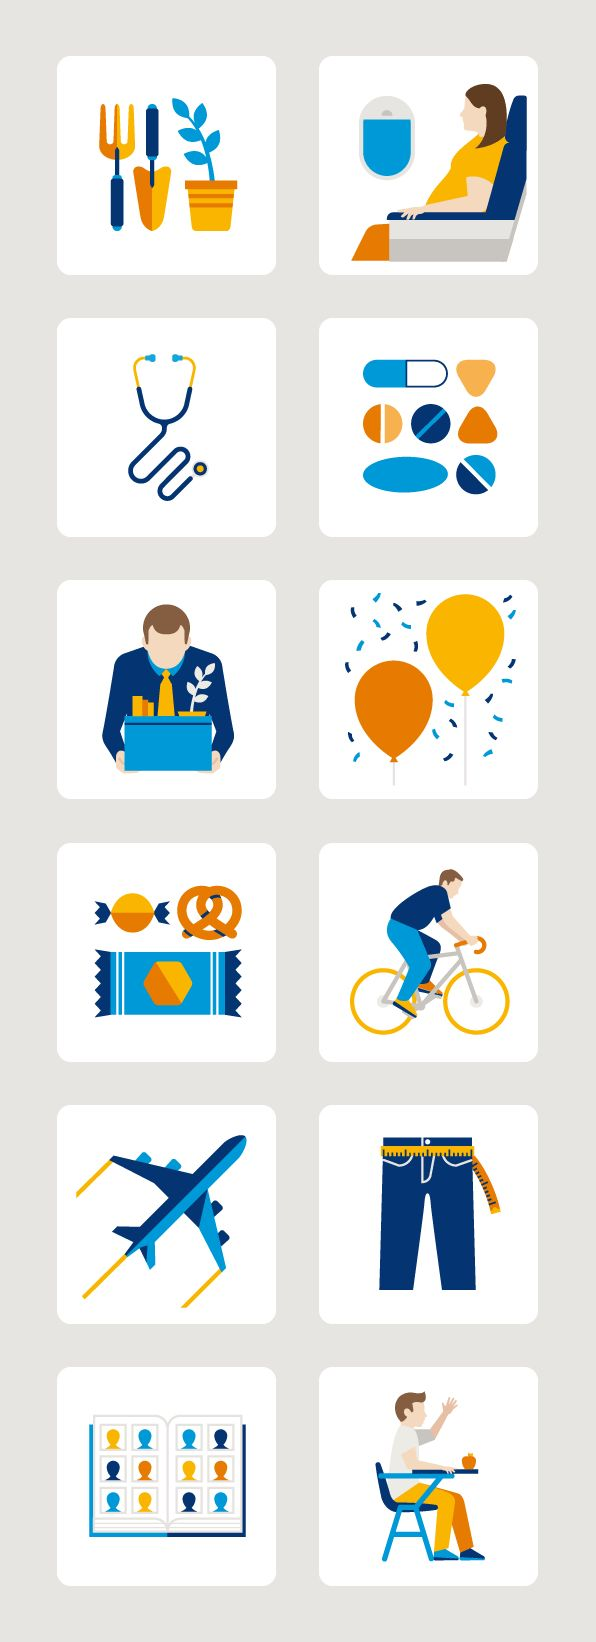 Earlier this year I was asked by BBDO to help create 70 health inspired icons for the Danish pharmaceutical company Novo Nordisk. With art direction from the BBDO team and guidance from my agent George Grace, we were able to produce a set of icons that work in line with the existing Novo Nordisk brand.Here are selection of icons with the rest soon to be uploaded onto my site.